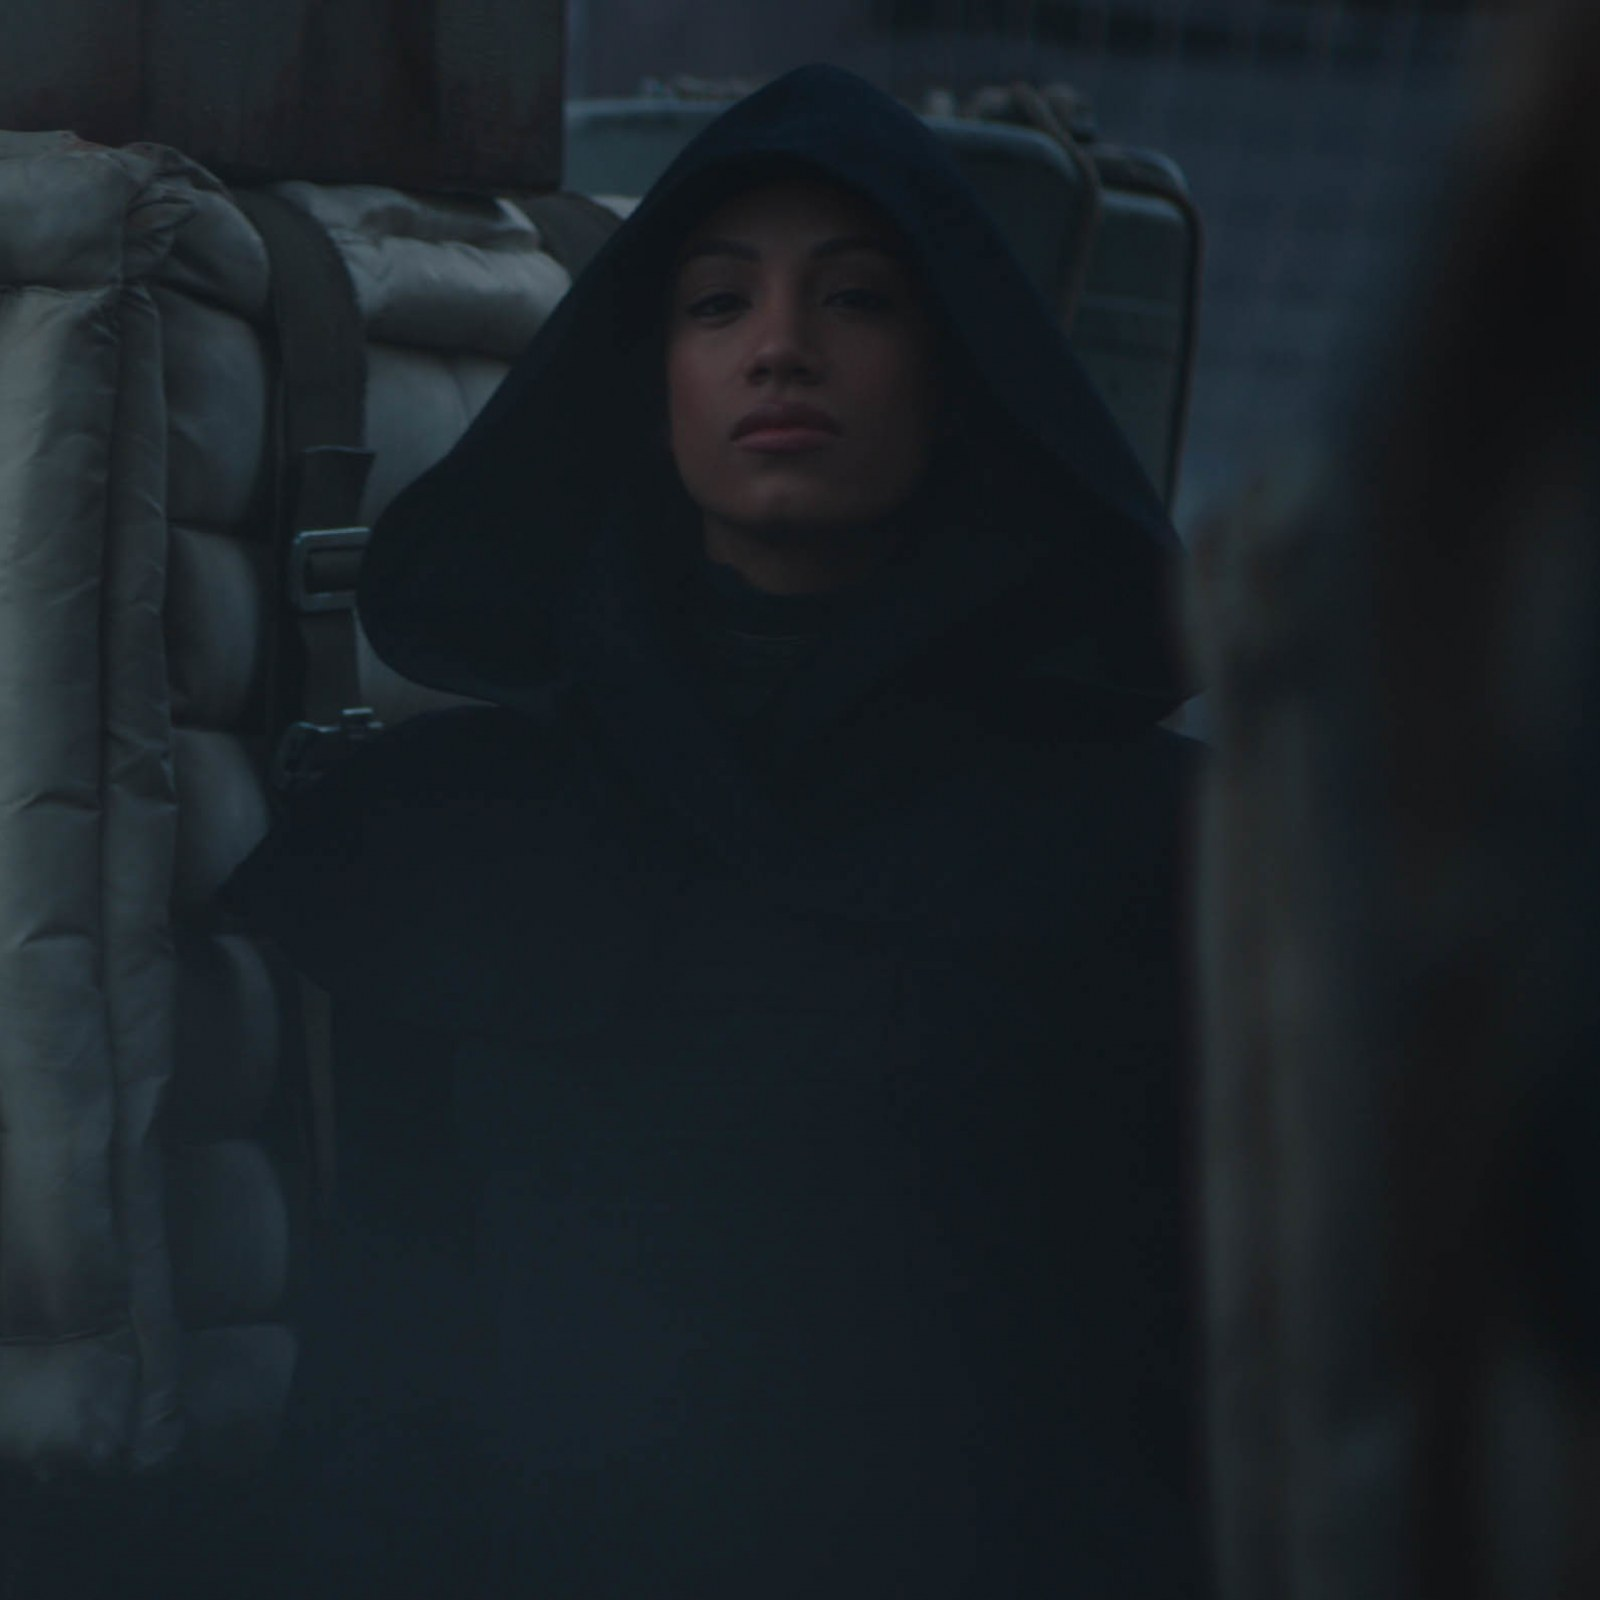 No That S Not Rosario Dawson In The The Mandalorian Season 2 Trailer It S Sasha Banks